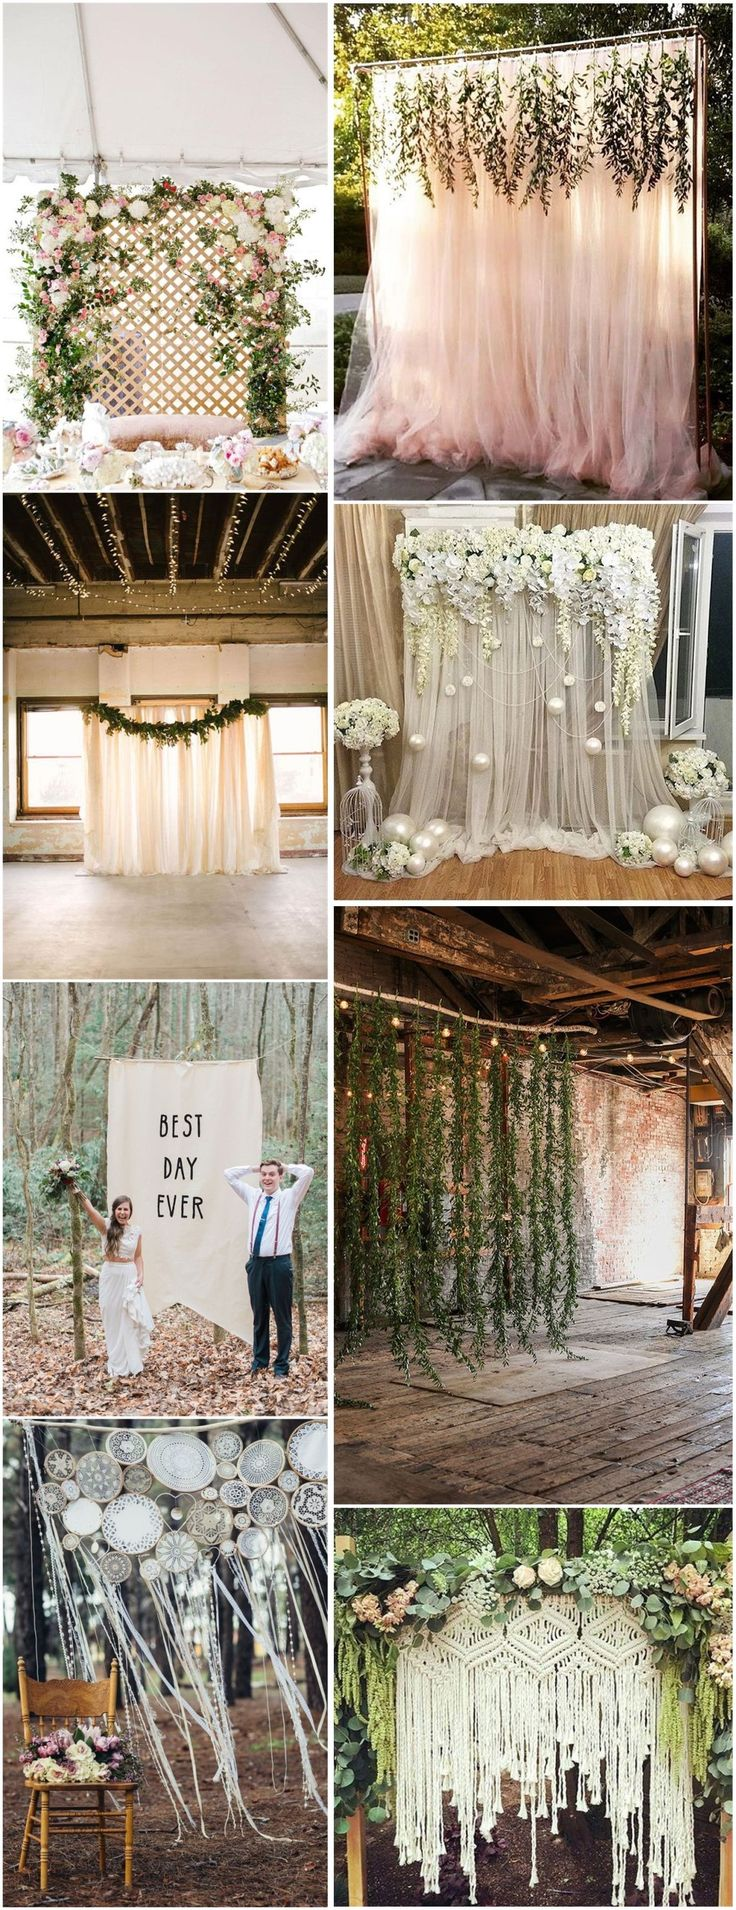 Rustic Weddings » 30 Unique and Breathtaking Wedding Backdrop Ideas » ❤️ More: http://www.weddinginclude.com/2017/05/unique-and-breathtaking-wedding-backdrop-ideas/ @rubylanecom